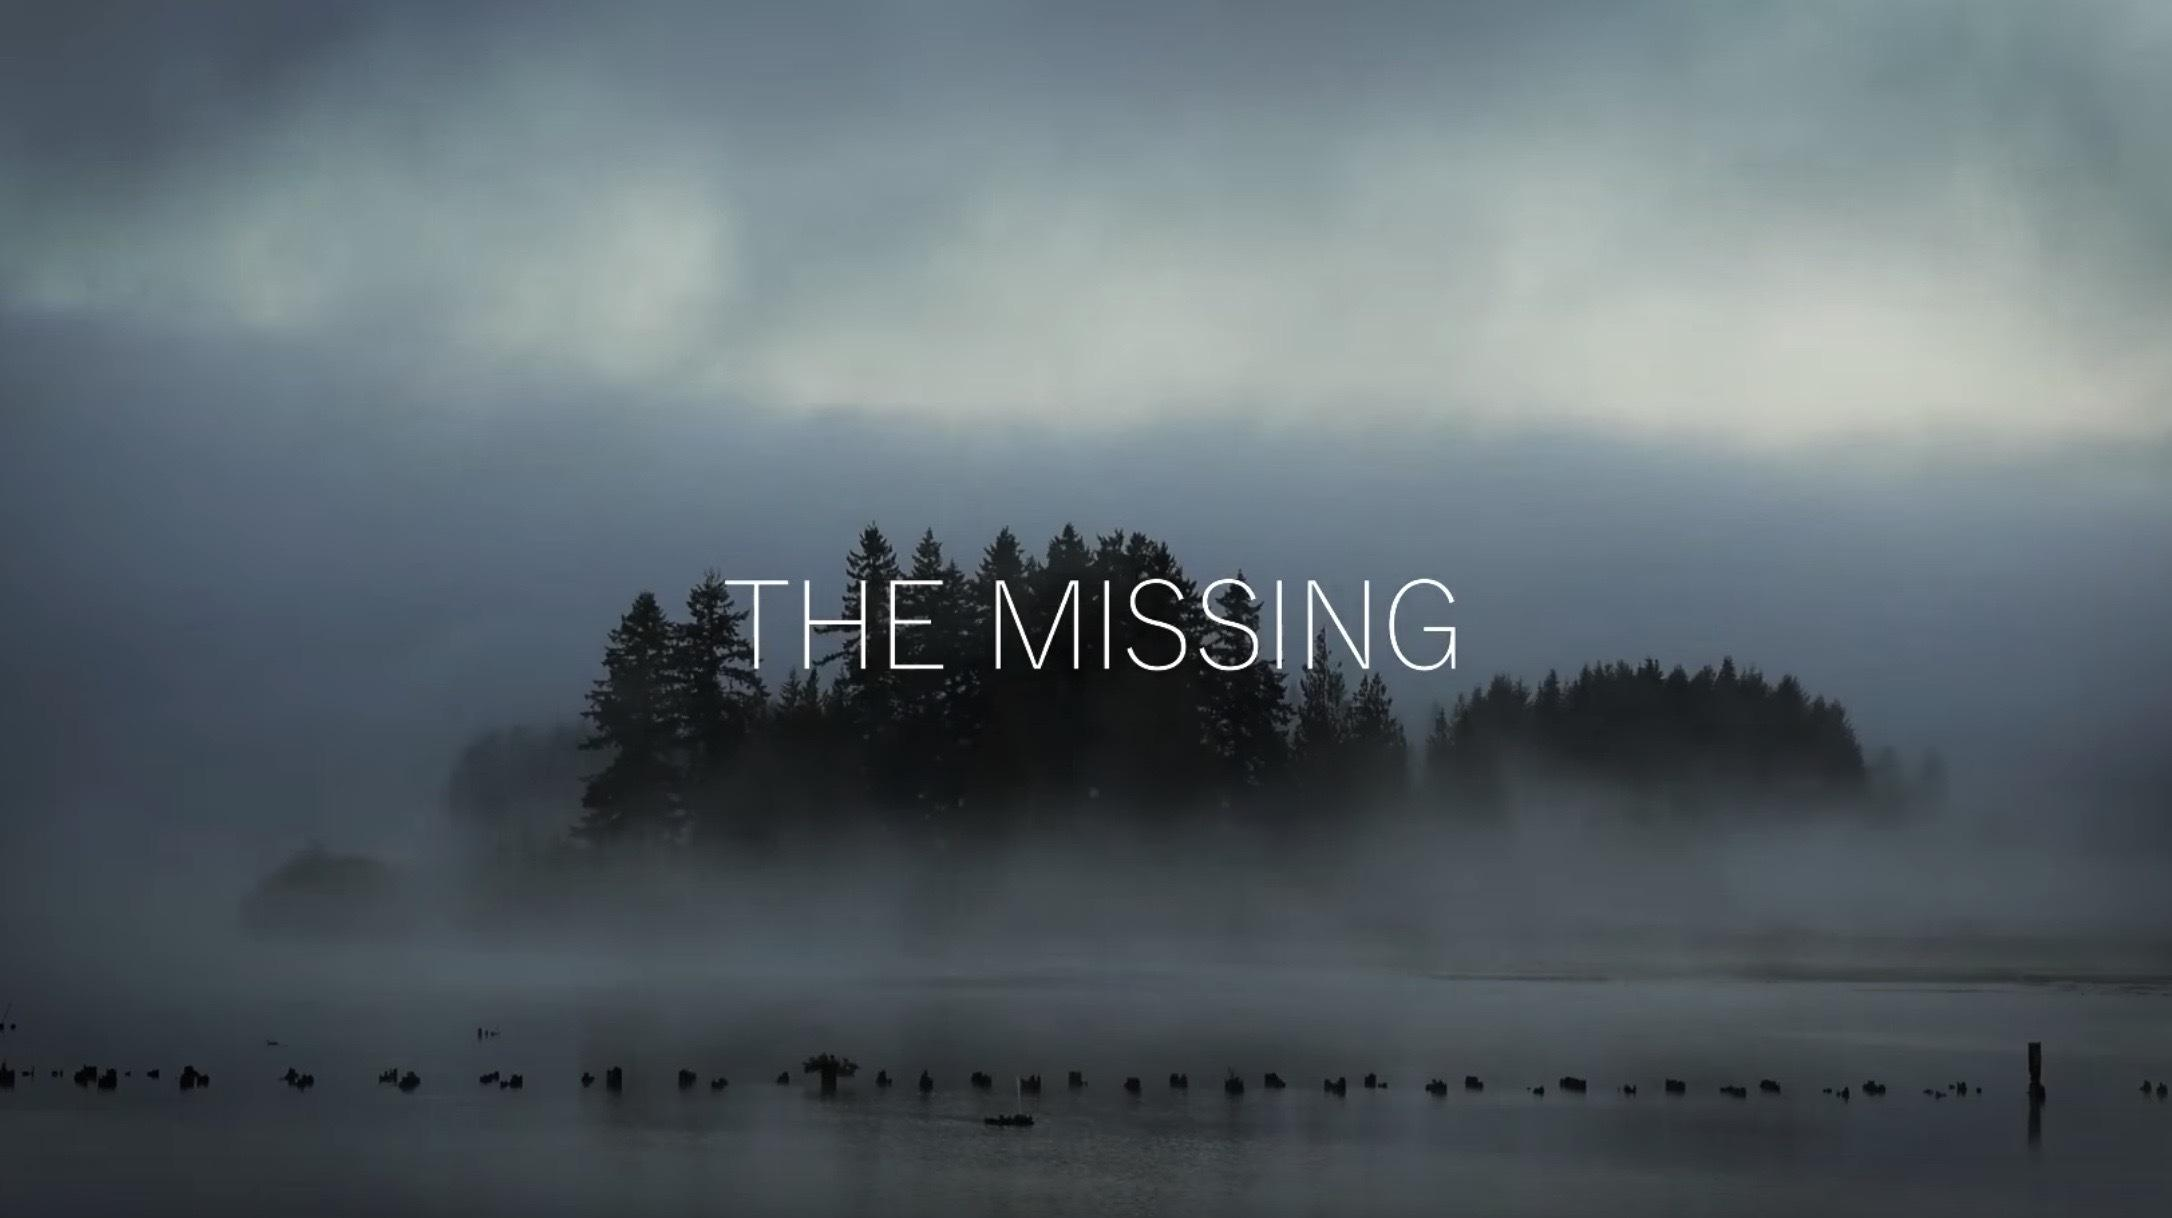 Arc Systems Works & Deadly Premonition Dev Announce Joint Title The Missing